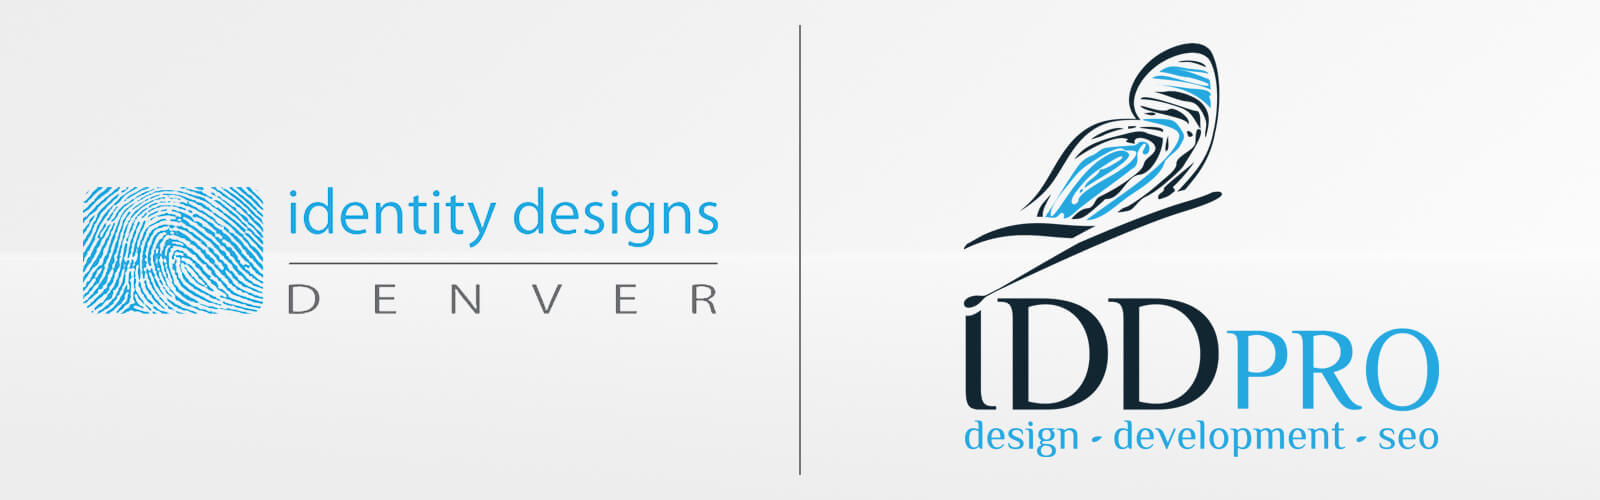 Identity Designs Denver is now IDDpro